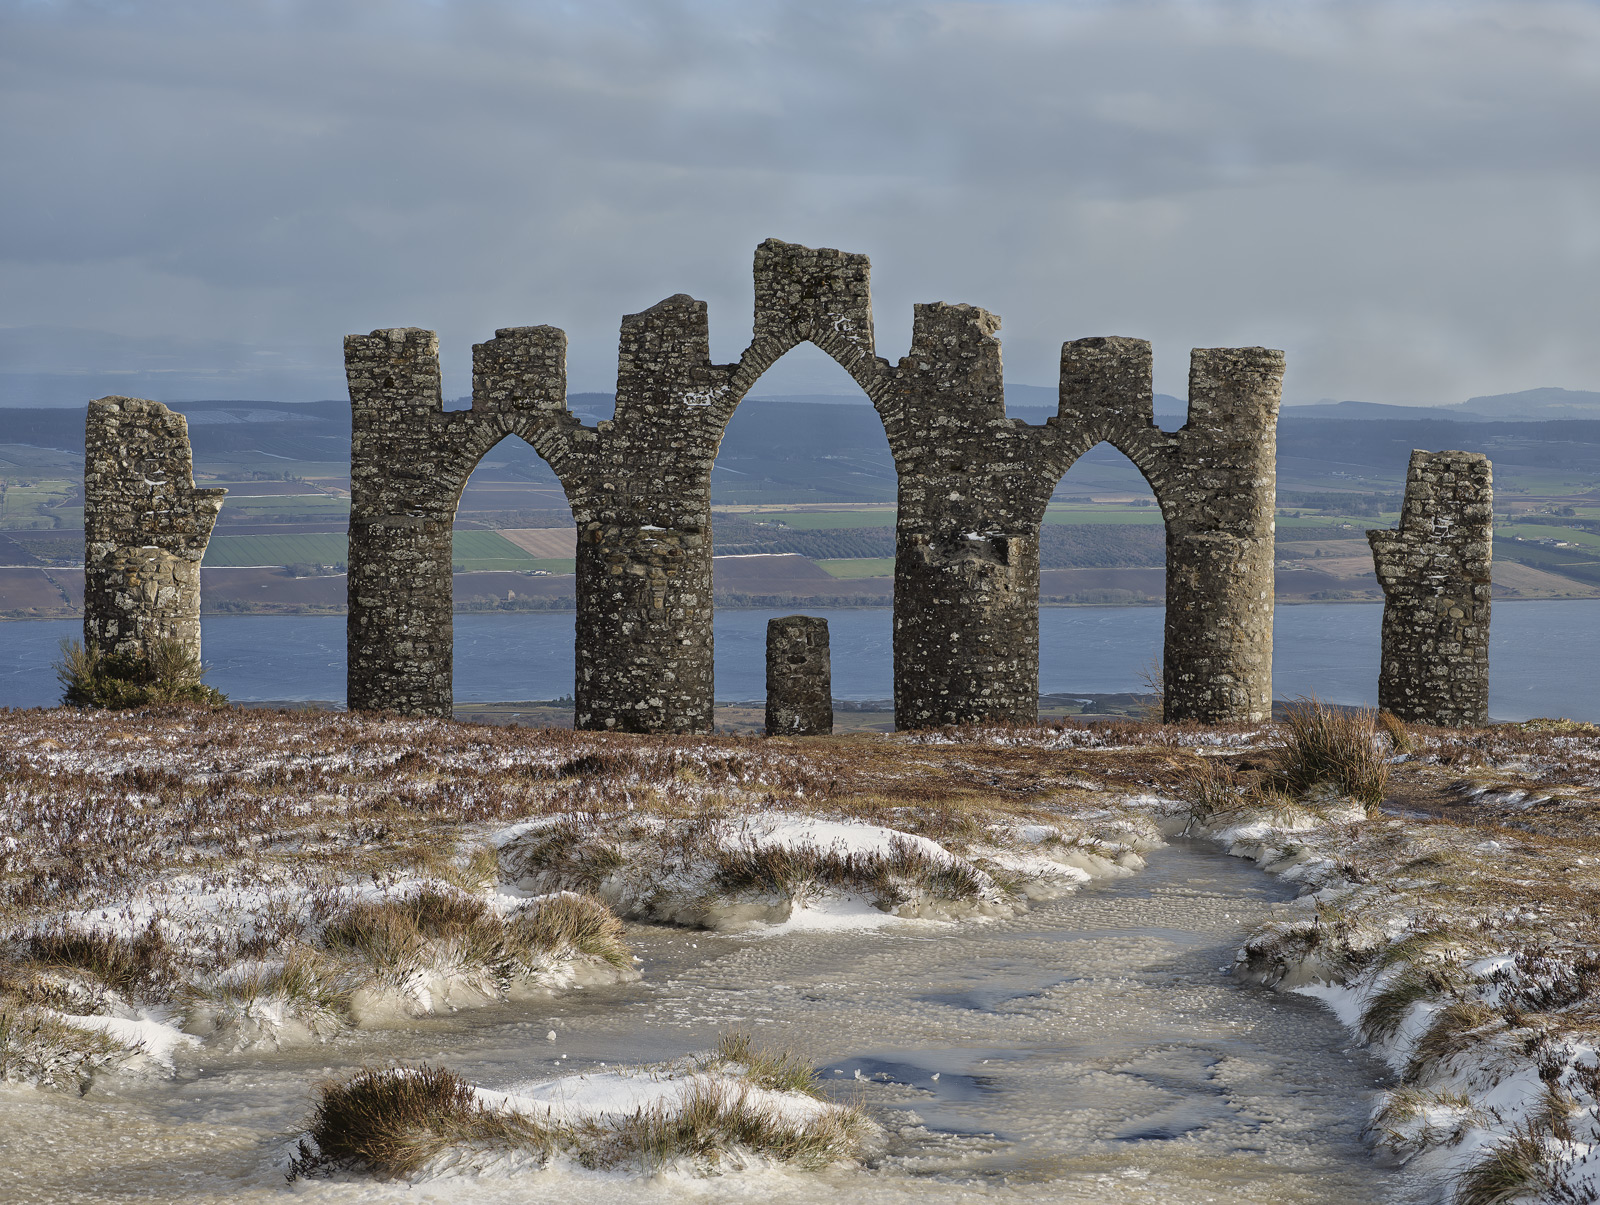 The unusual stone monument set upon a hill top at Fyrish above the Cromarty Firth and its resident oil rigs with ice and fresh snow dusting the ground.